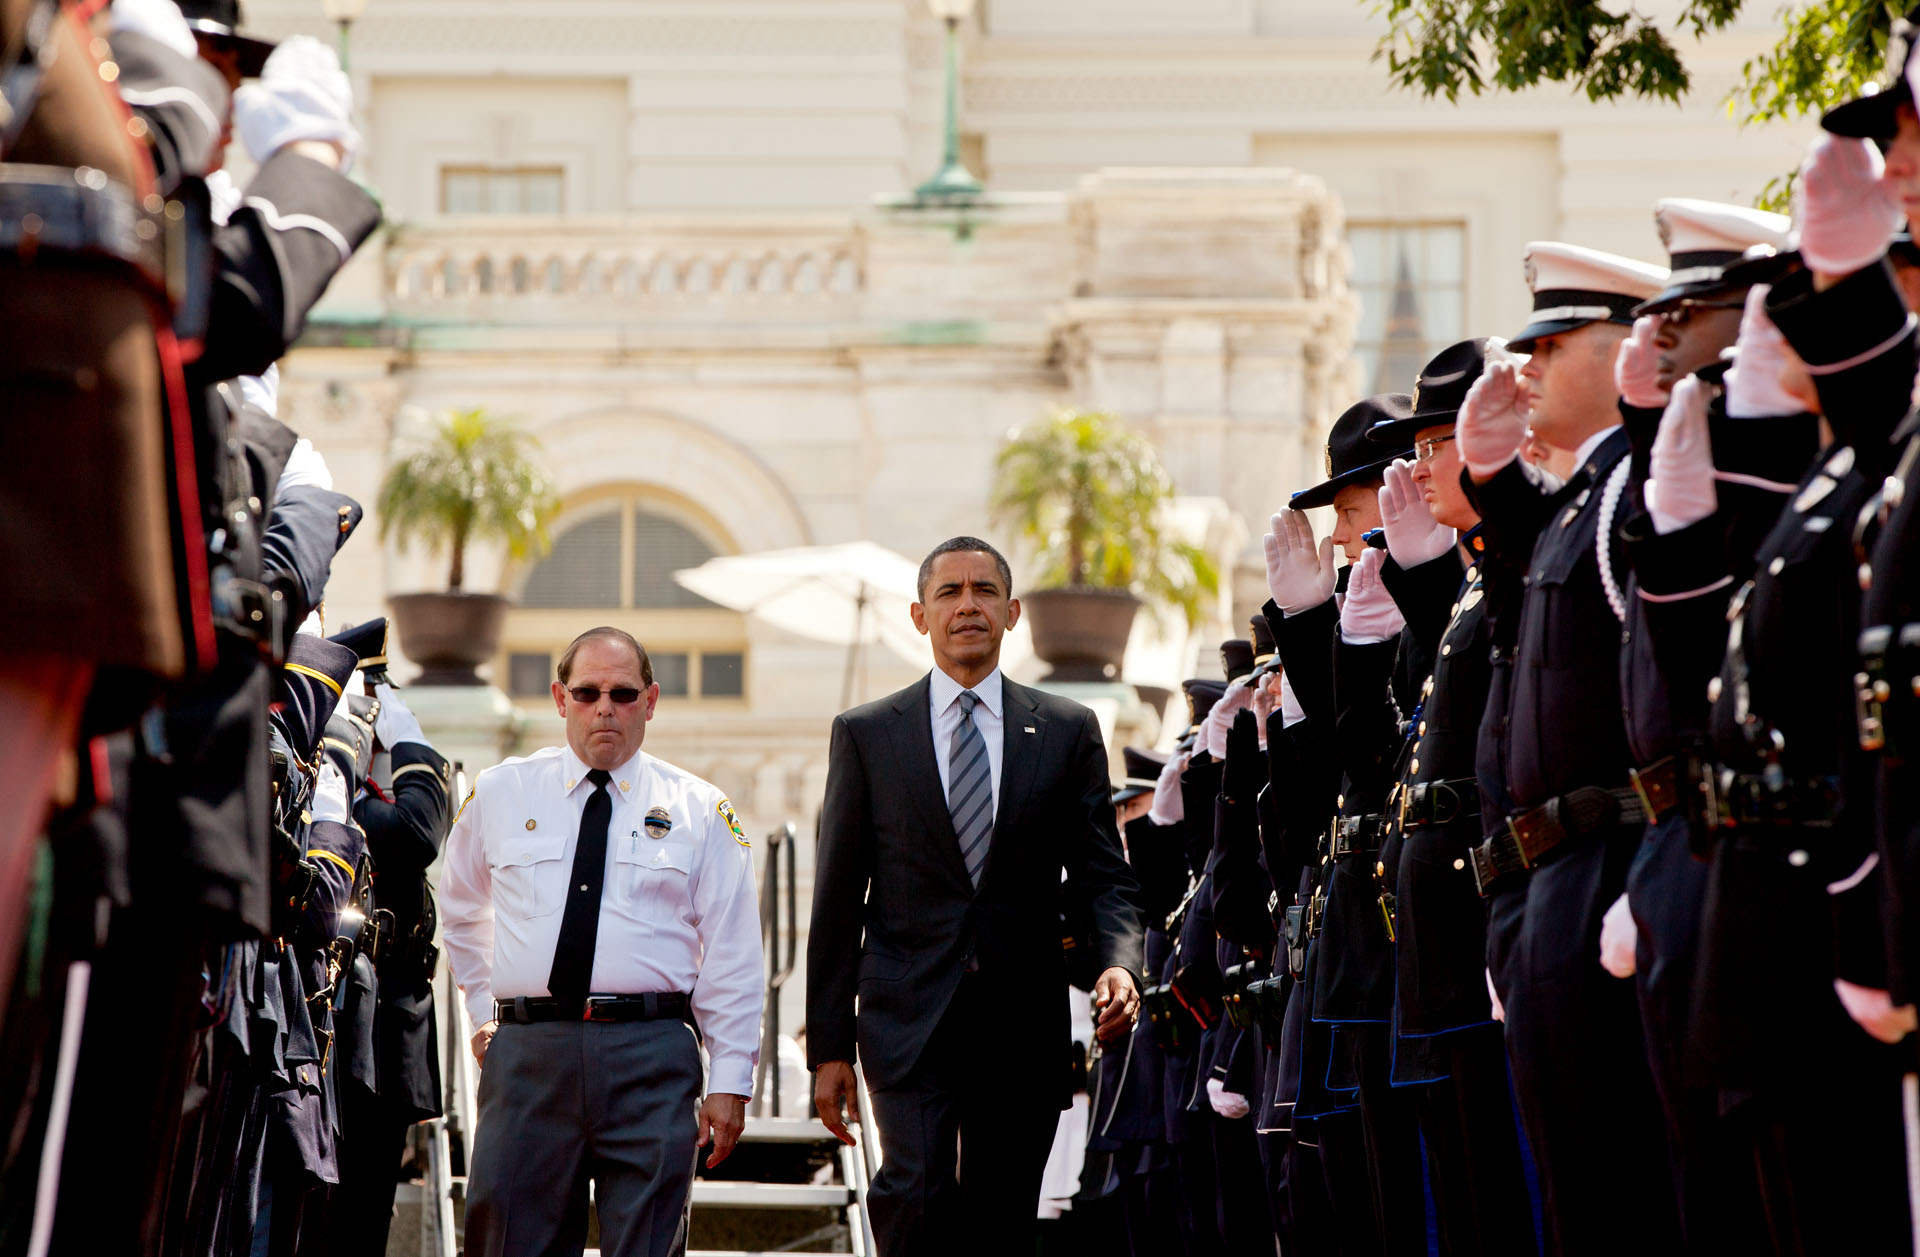 President Barack Obama at the National Peace Officers Memorial Service